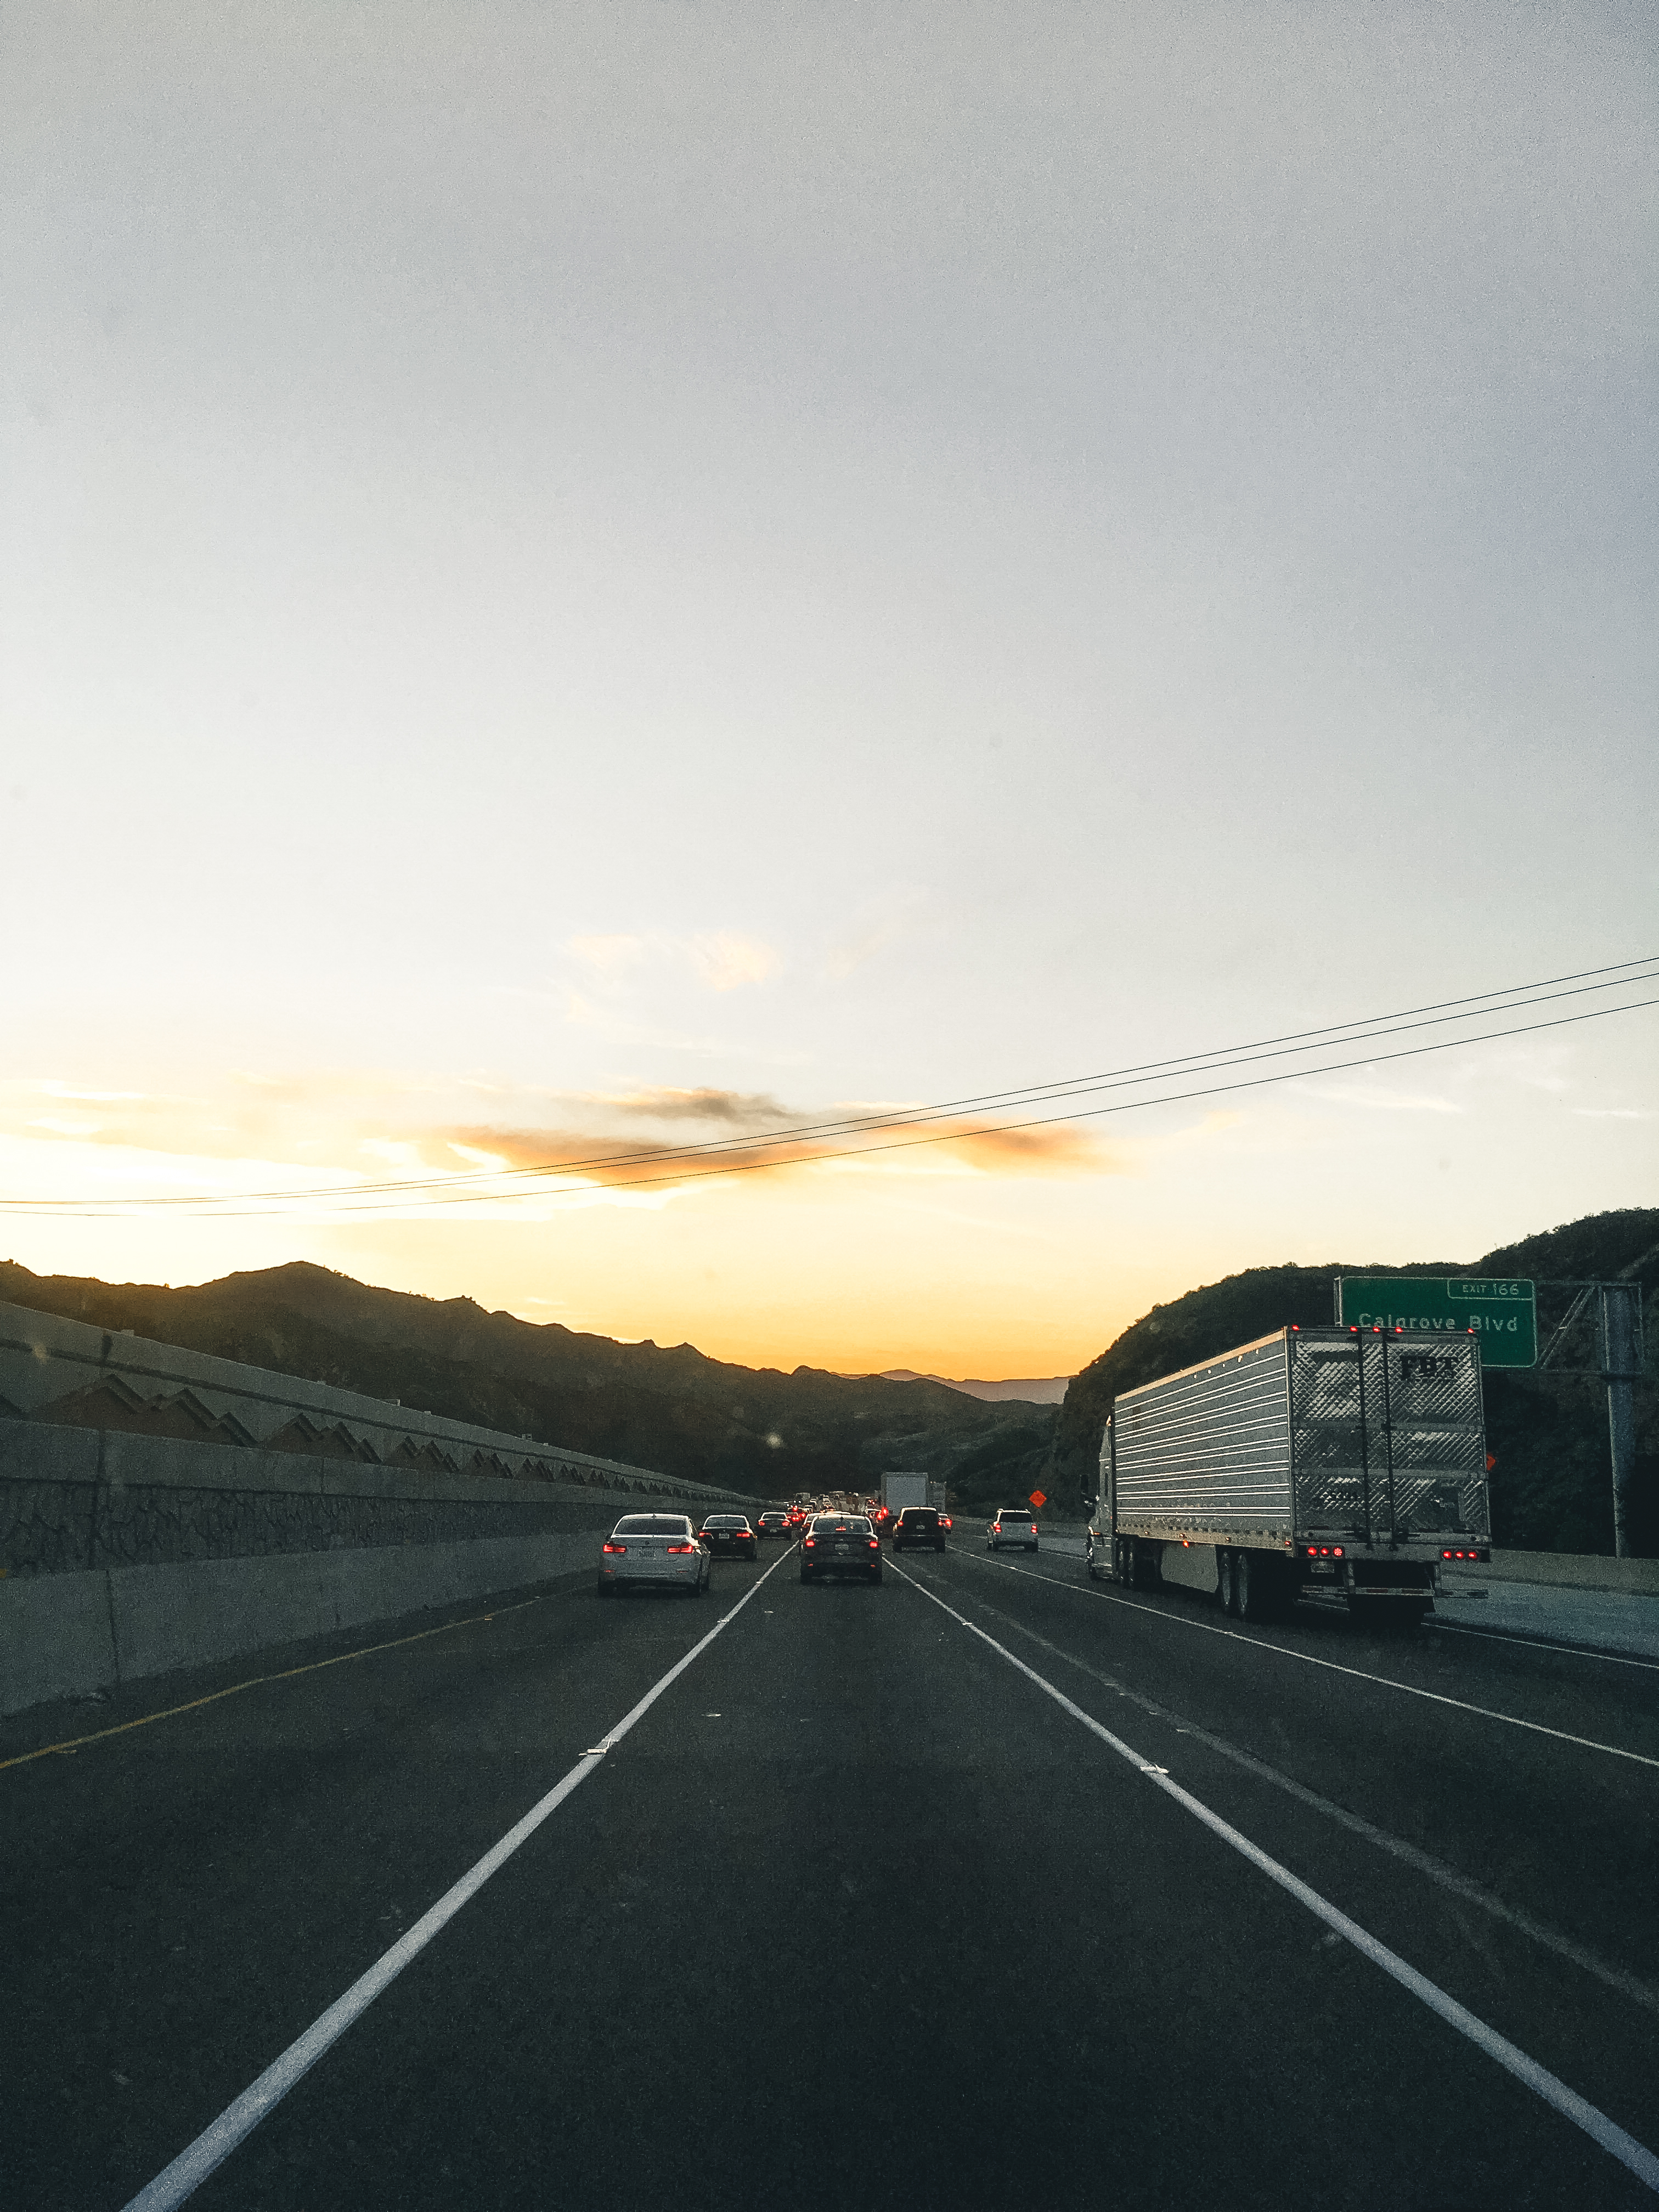 Vehicles on Road During Golden Hour